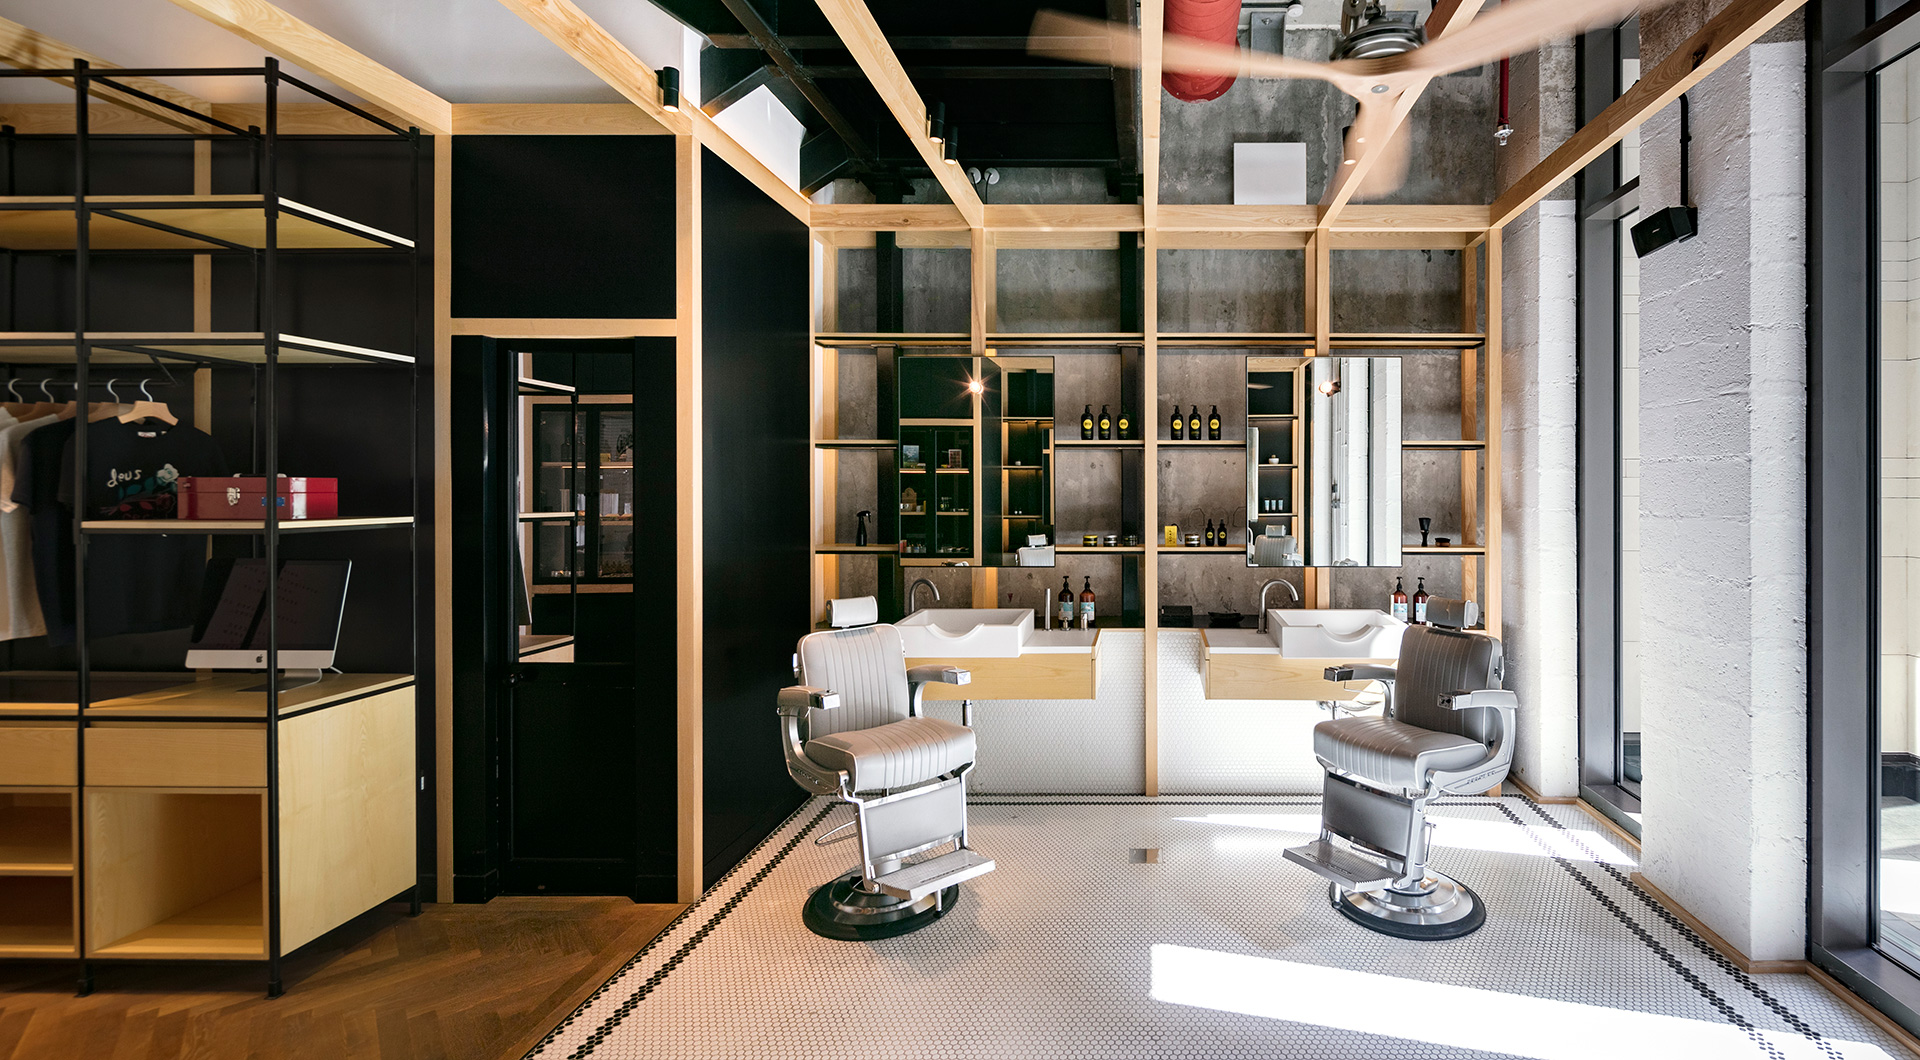 The timber module against the dark background provides modish, compartmentalised areas within the barbershop | Akin at The Beach| Akin Barber and Shop| Anarchitect| STIR